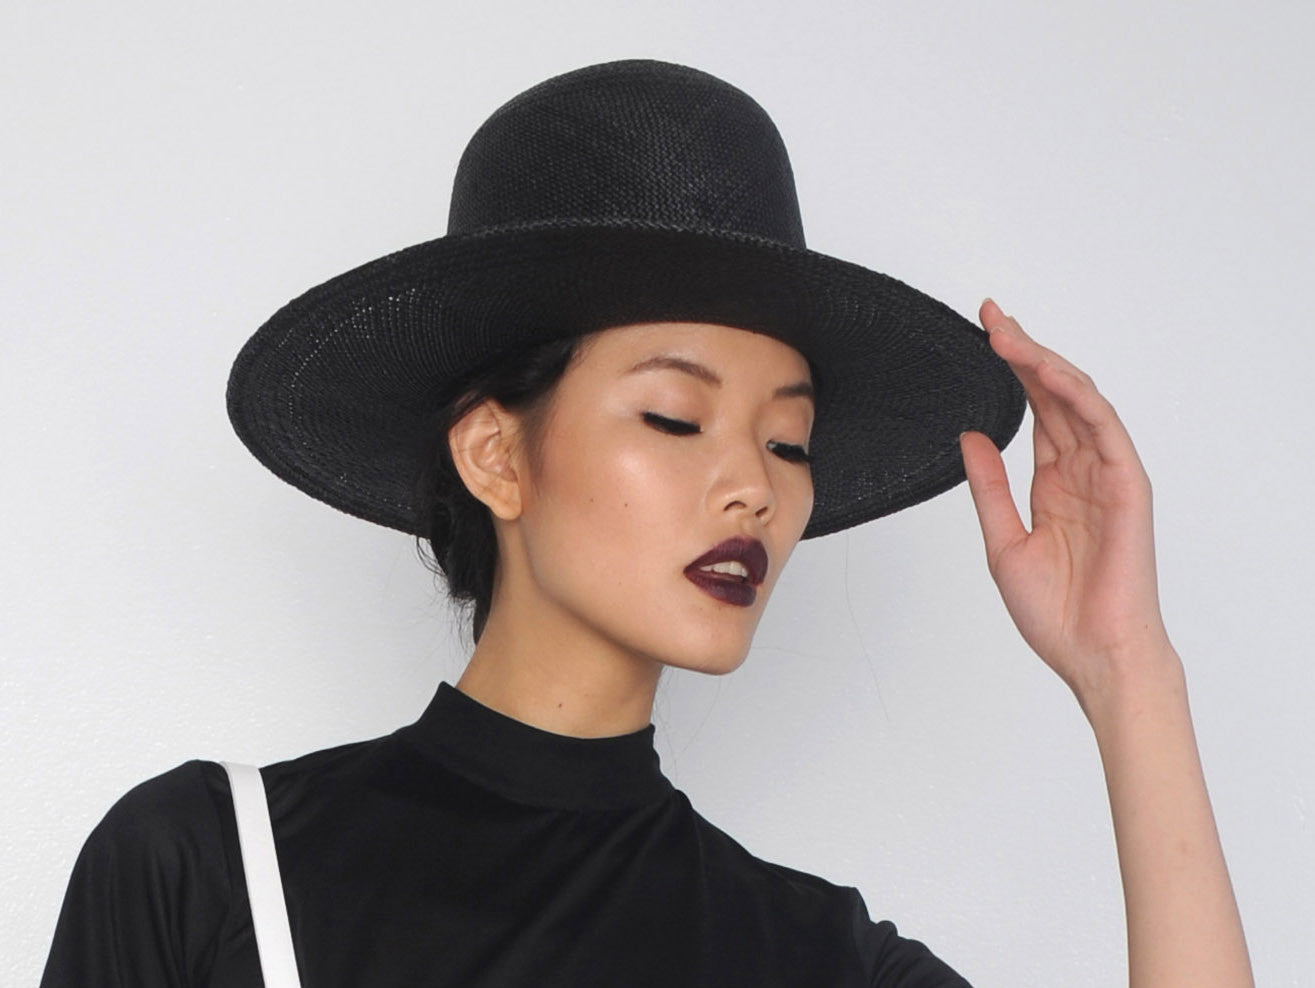 Black Straw Tall Wide Brim Hat Wendy Nichol Designer Handmade in NYC Witch El Topo Magician Summer Hat Chen Lin IMG Model Beyonce Formation Hat